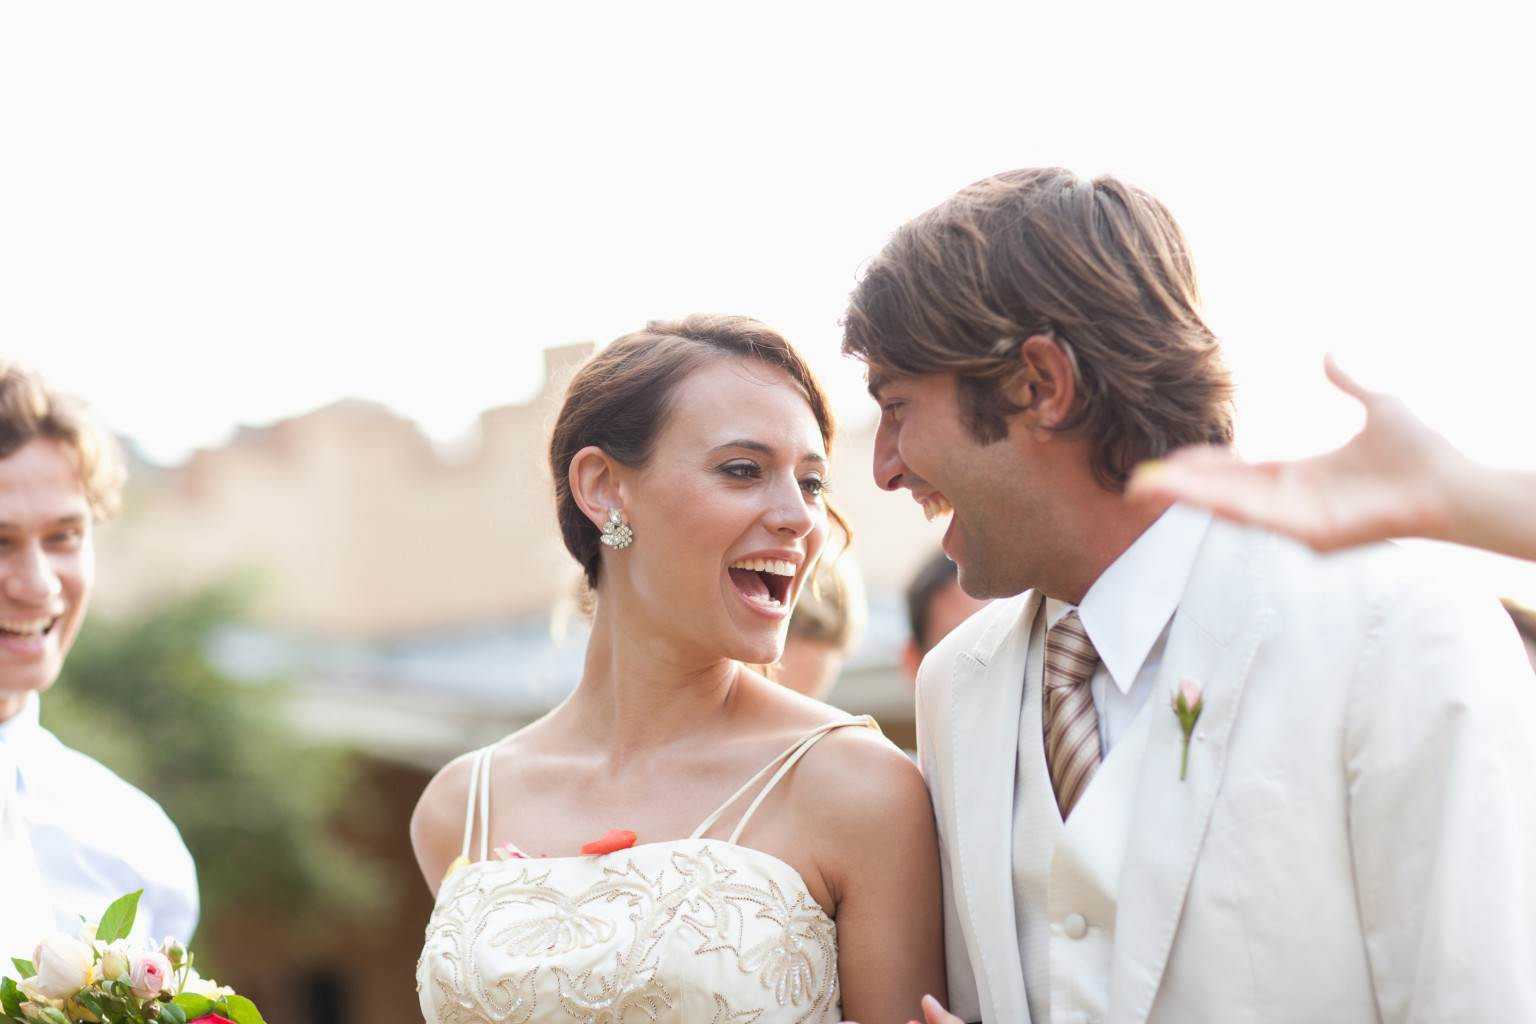 Bachelor and Chain: Why I Don't Regret Getting Married in College